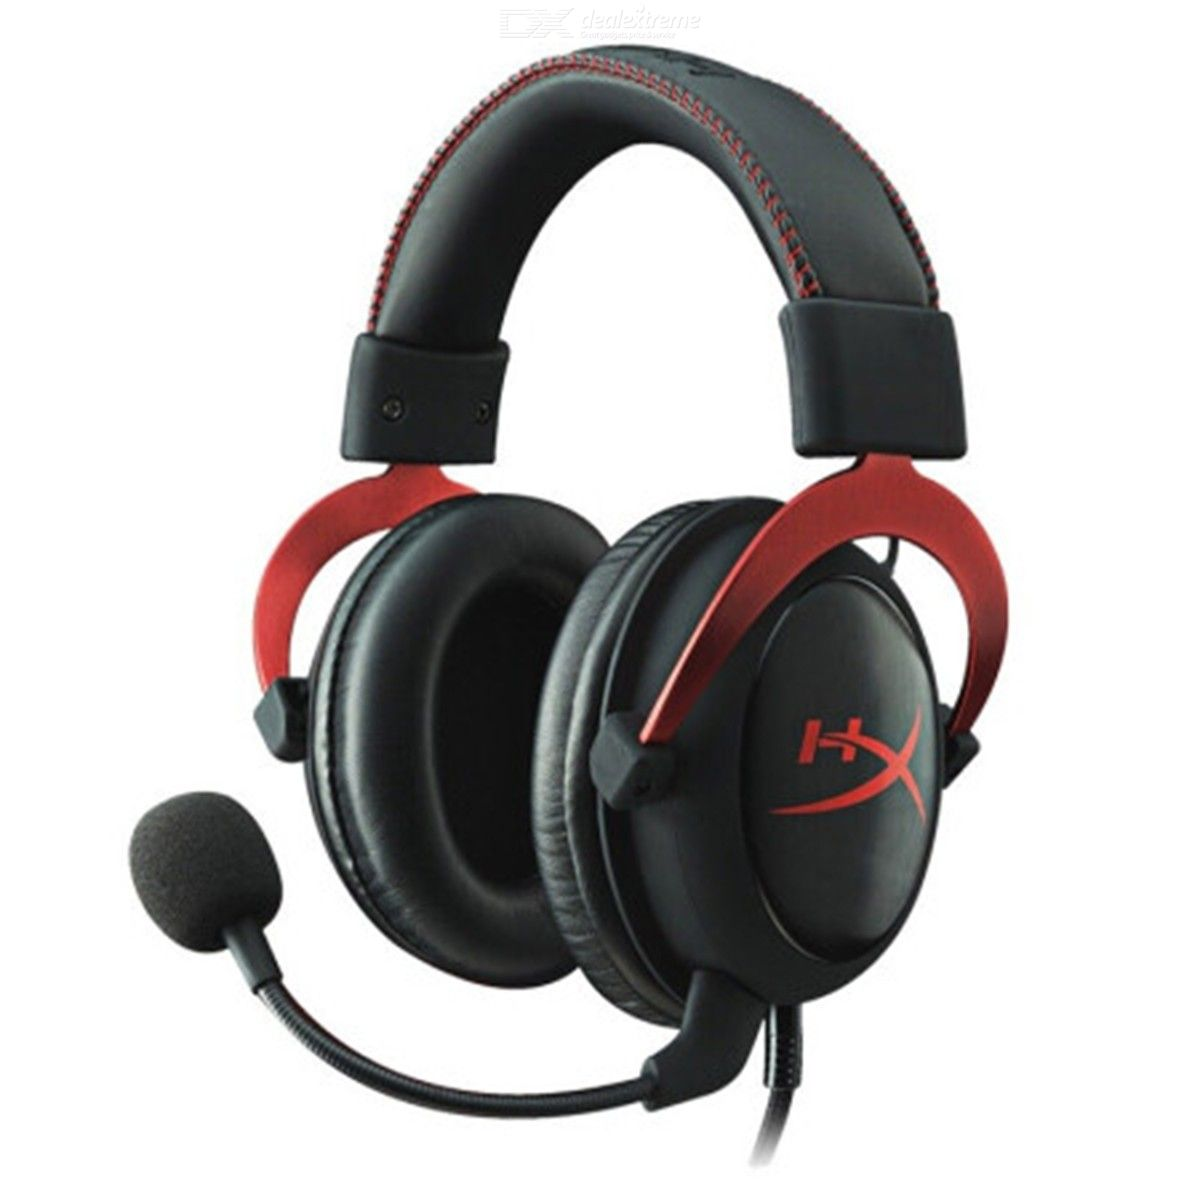 Kingston Hyper X Gaming Headset Over Ear Surround Sound Game Headset